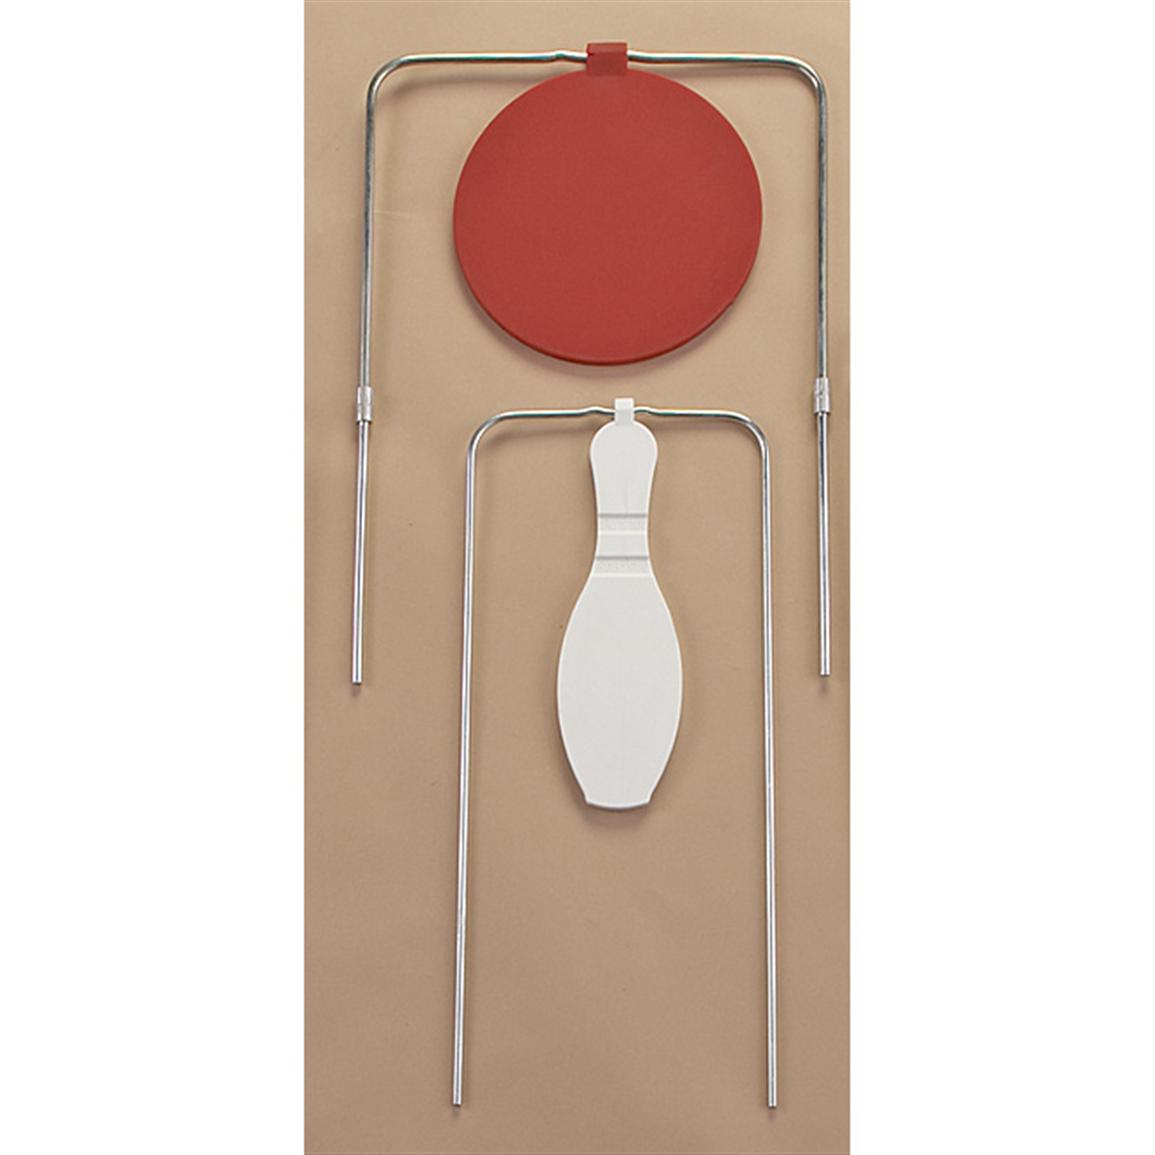 Do-All Outdoors™ Target, Shooter's Strike